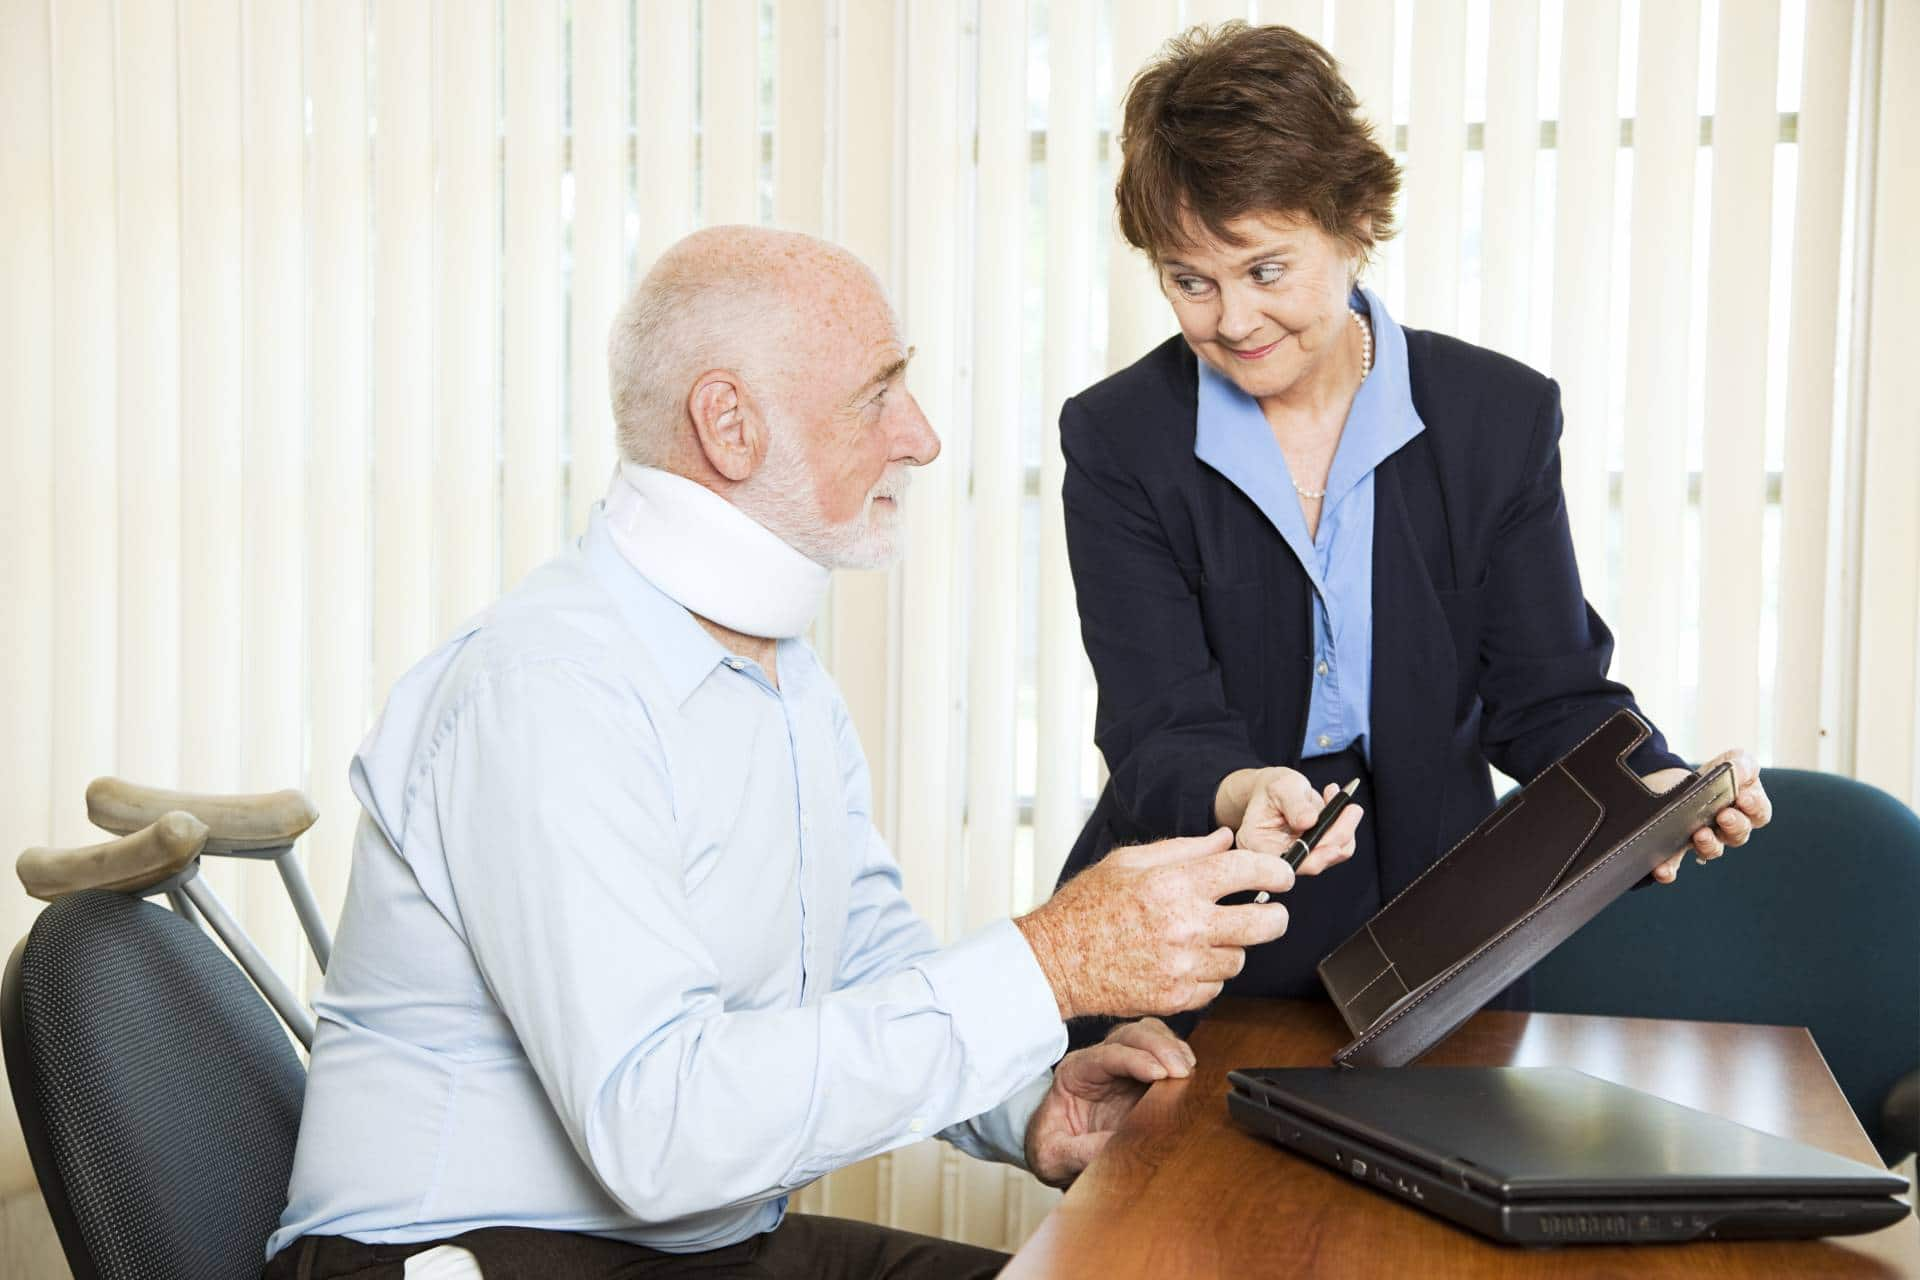 Schedule a free consultation with our personal injury lawyers at the Angell Law Firm in Peachtree Hills.